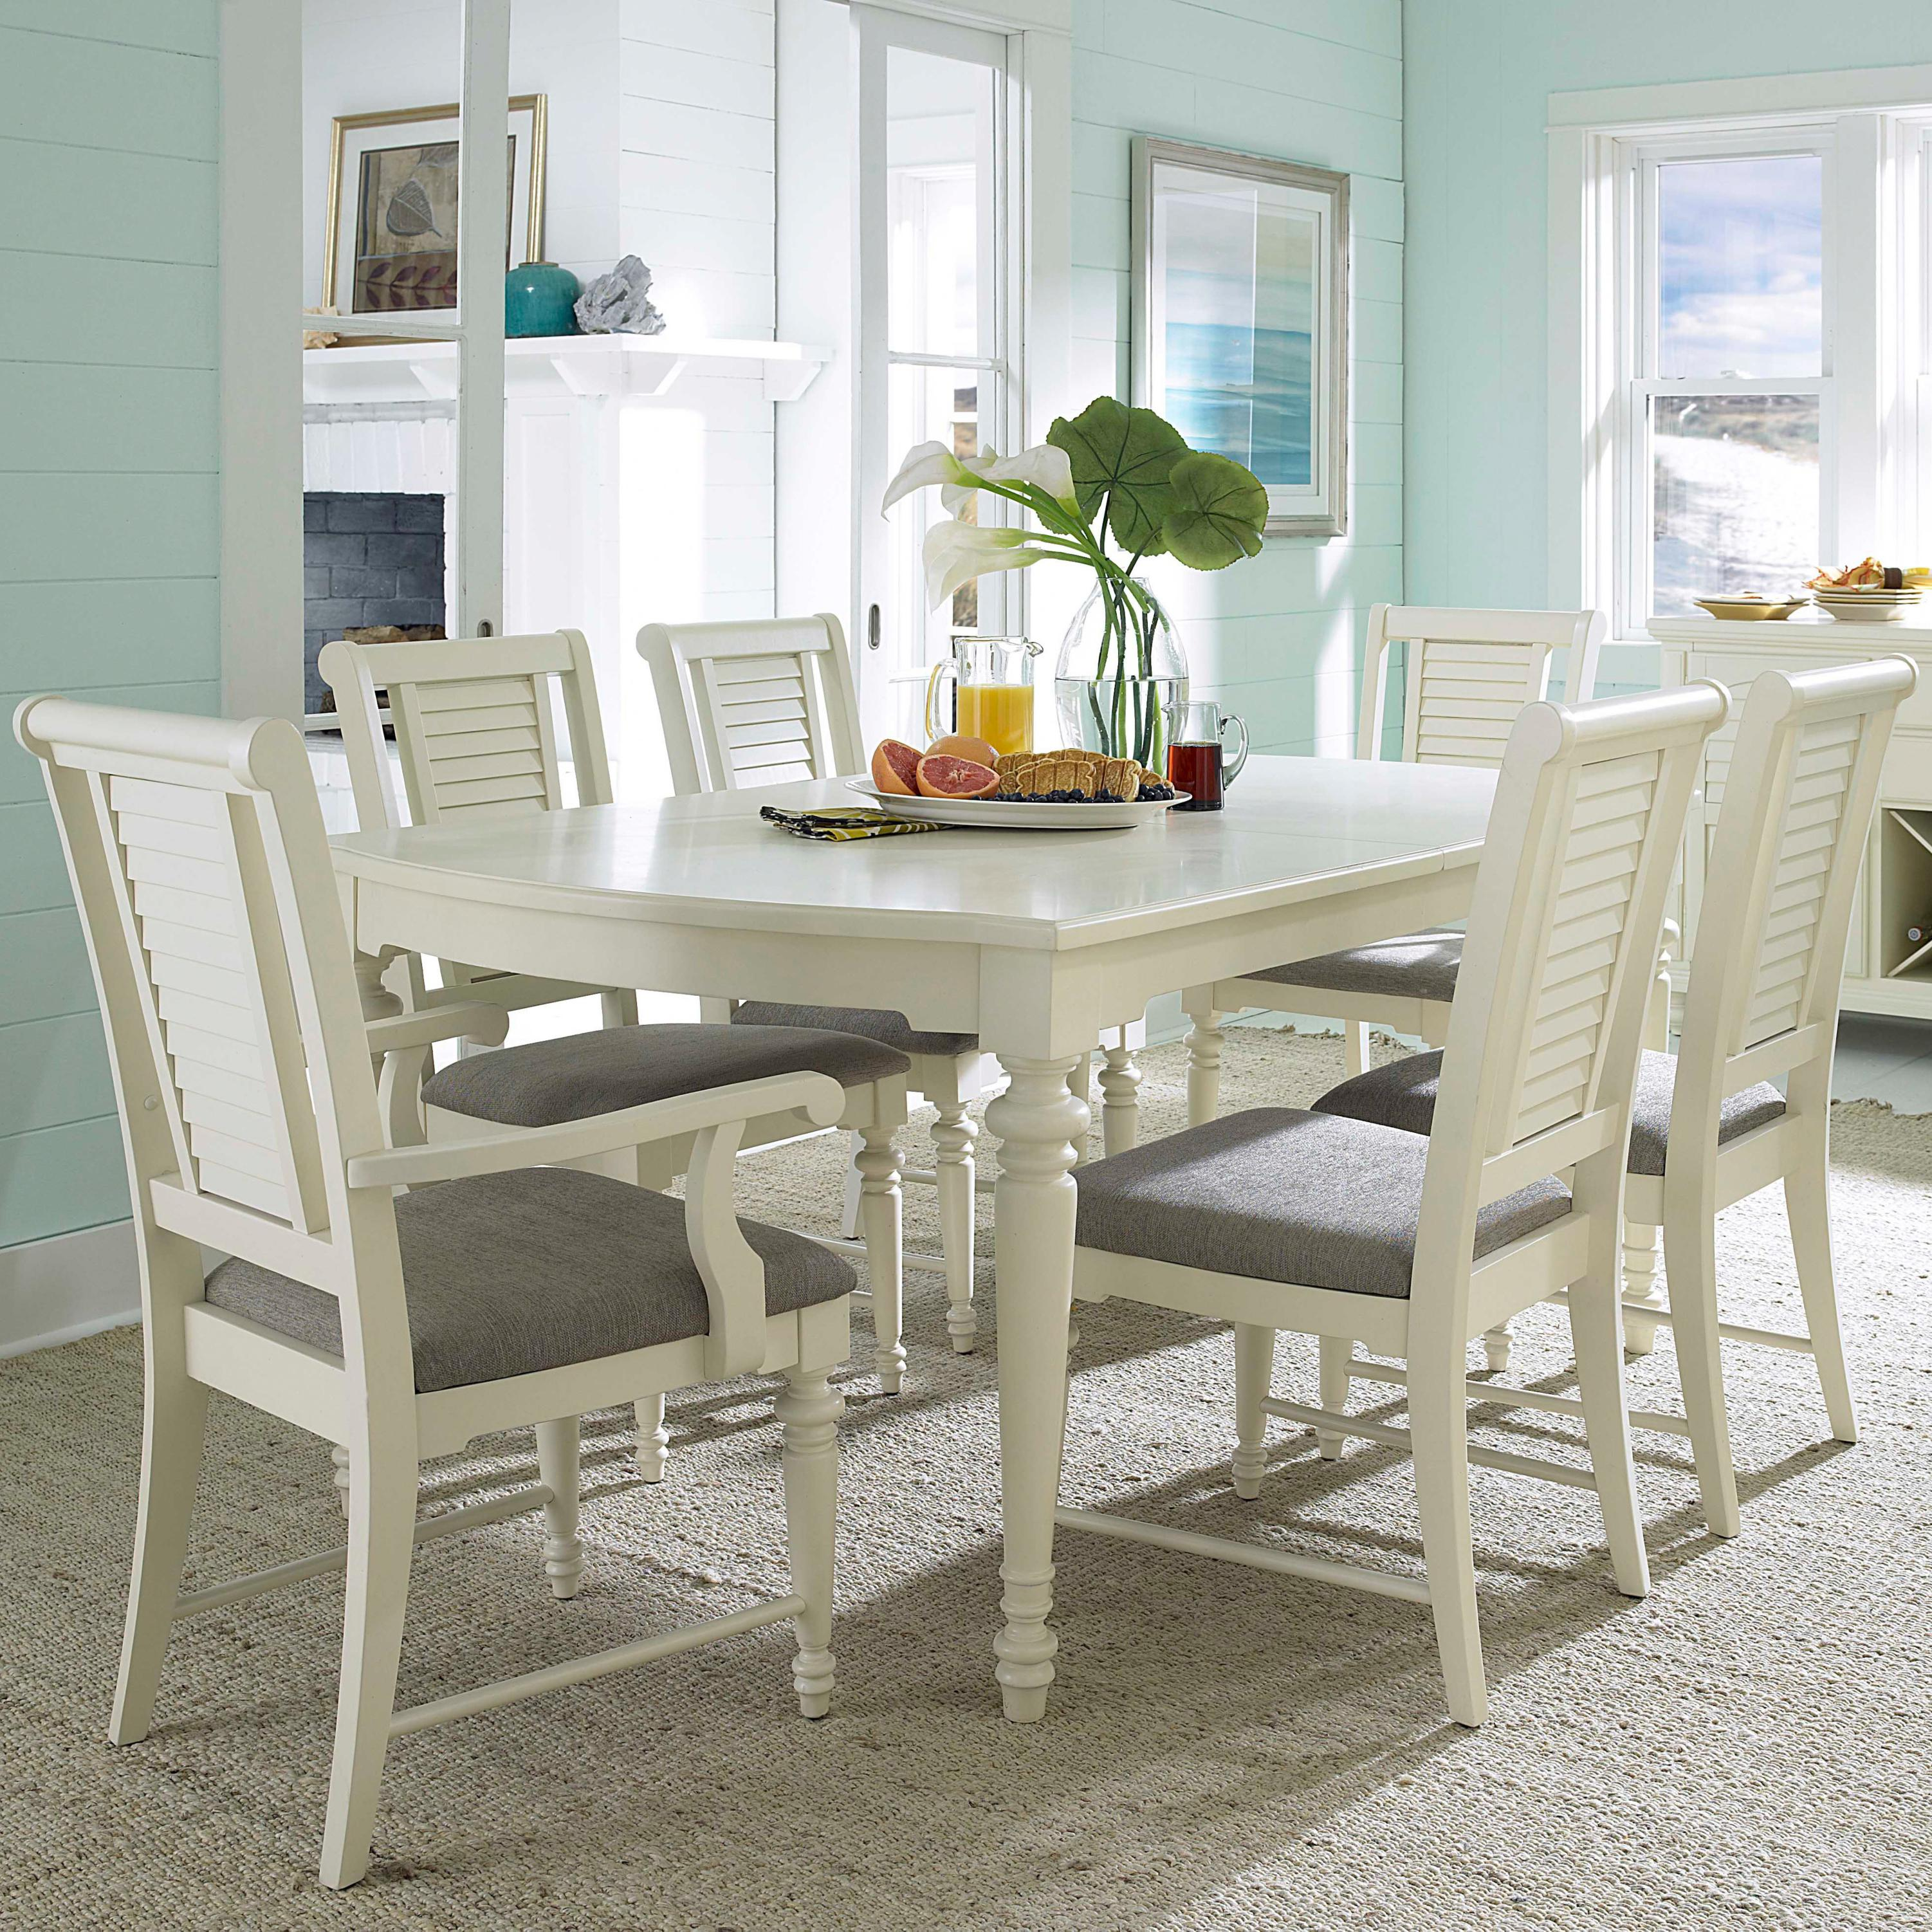 Broyhill Furniture Seabrooke 7 Piece Turned Leg Dining